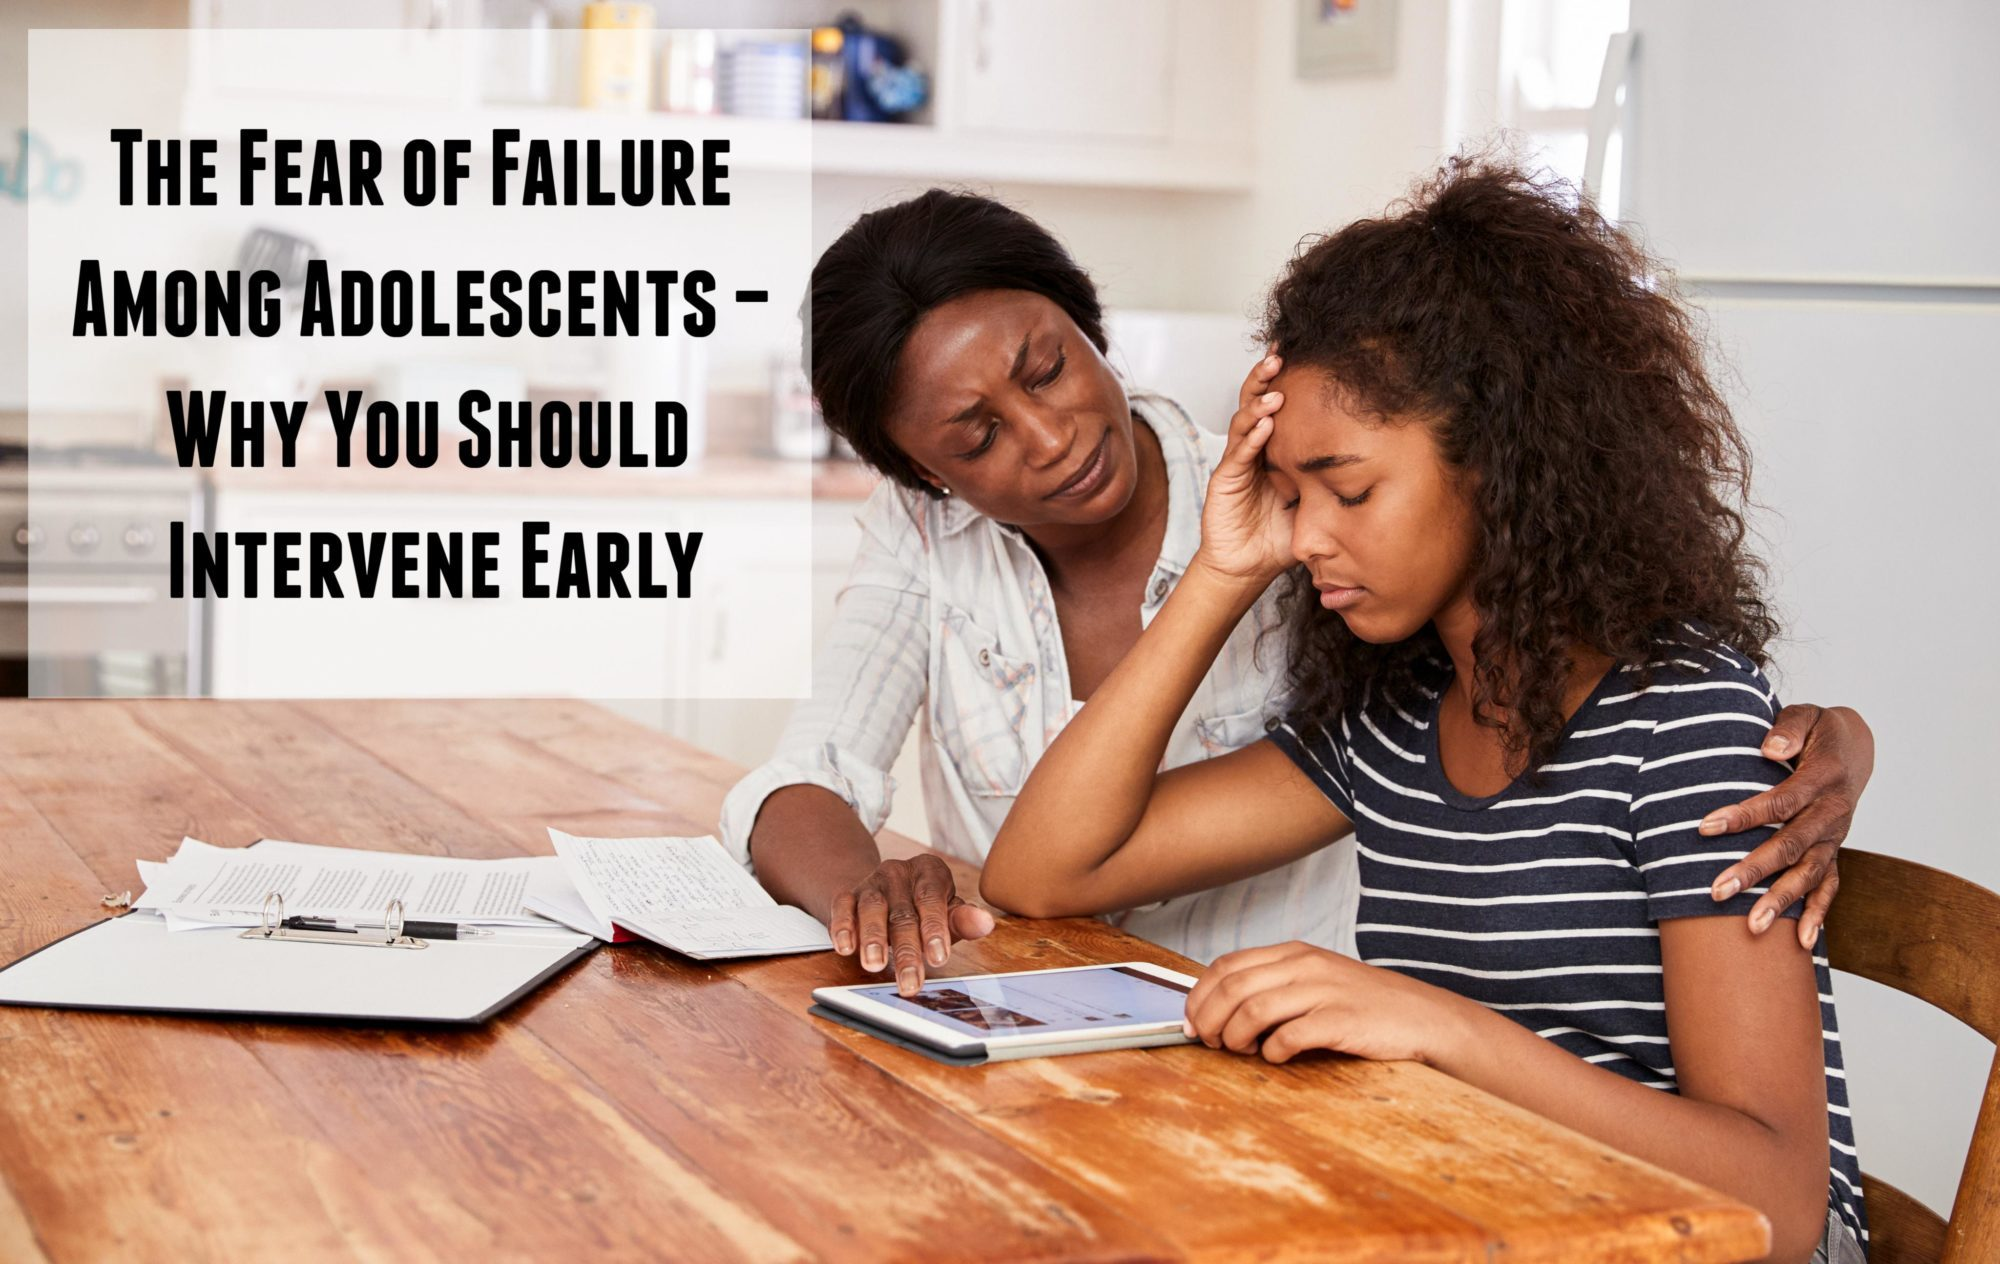 The fear of failure among adolescents--why you should intervene early